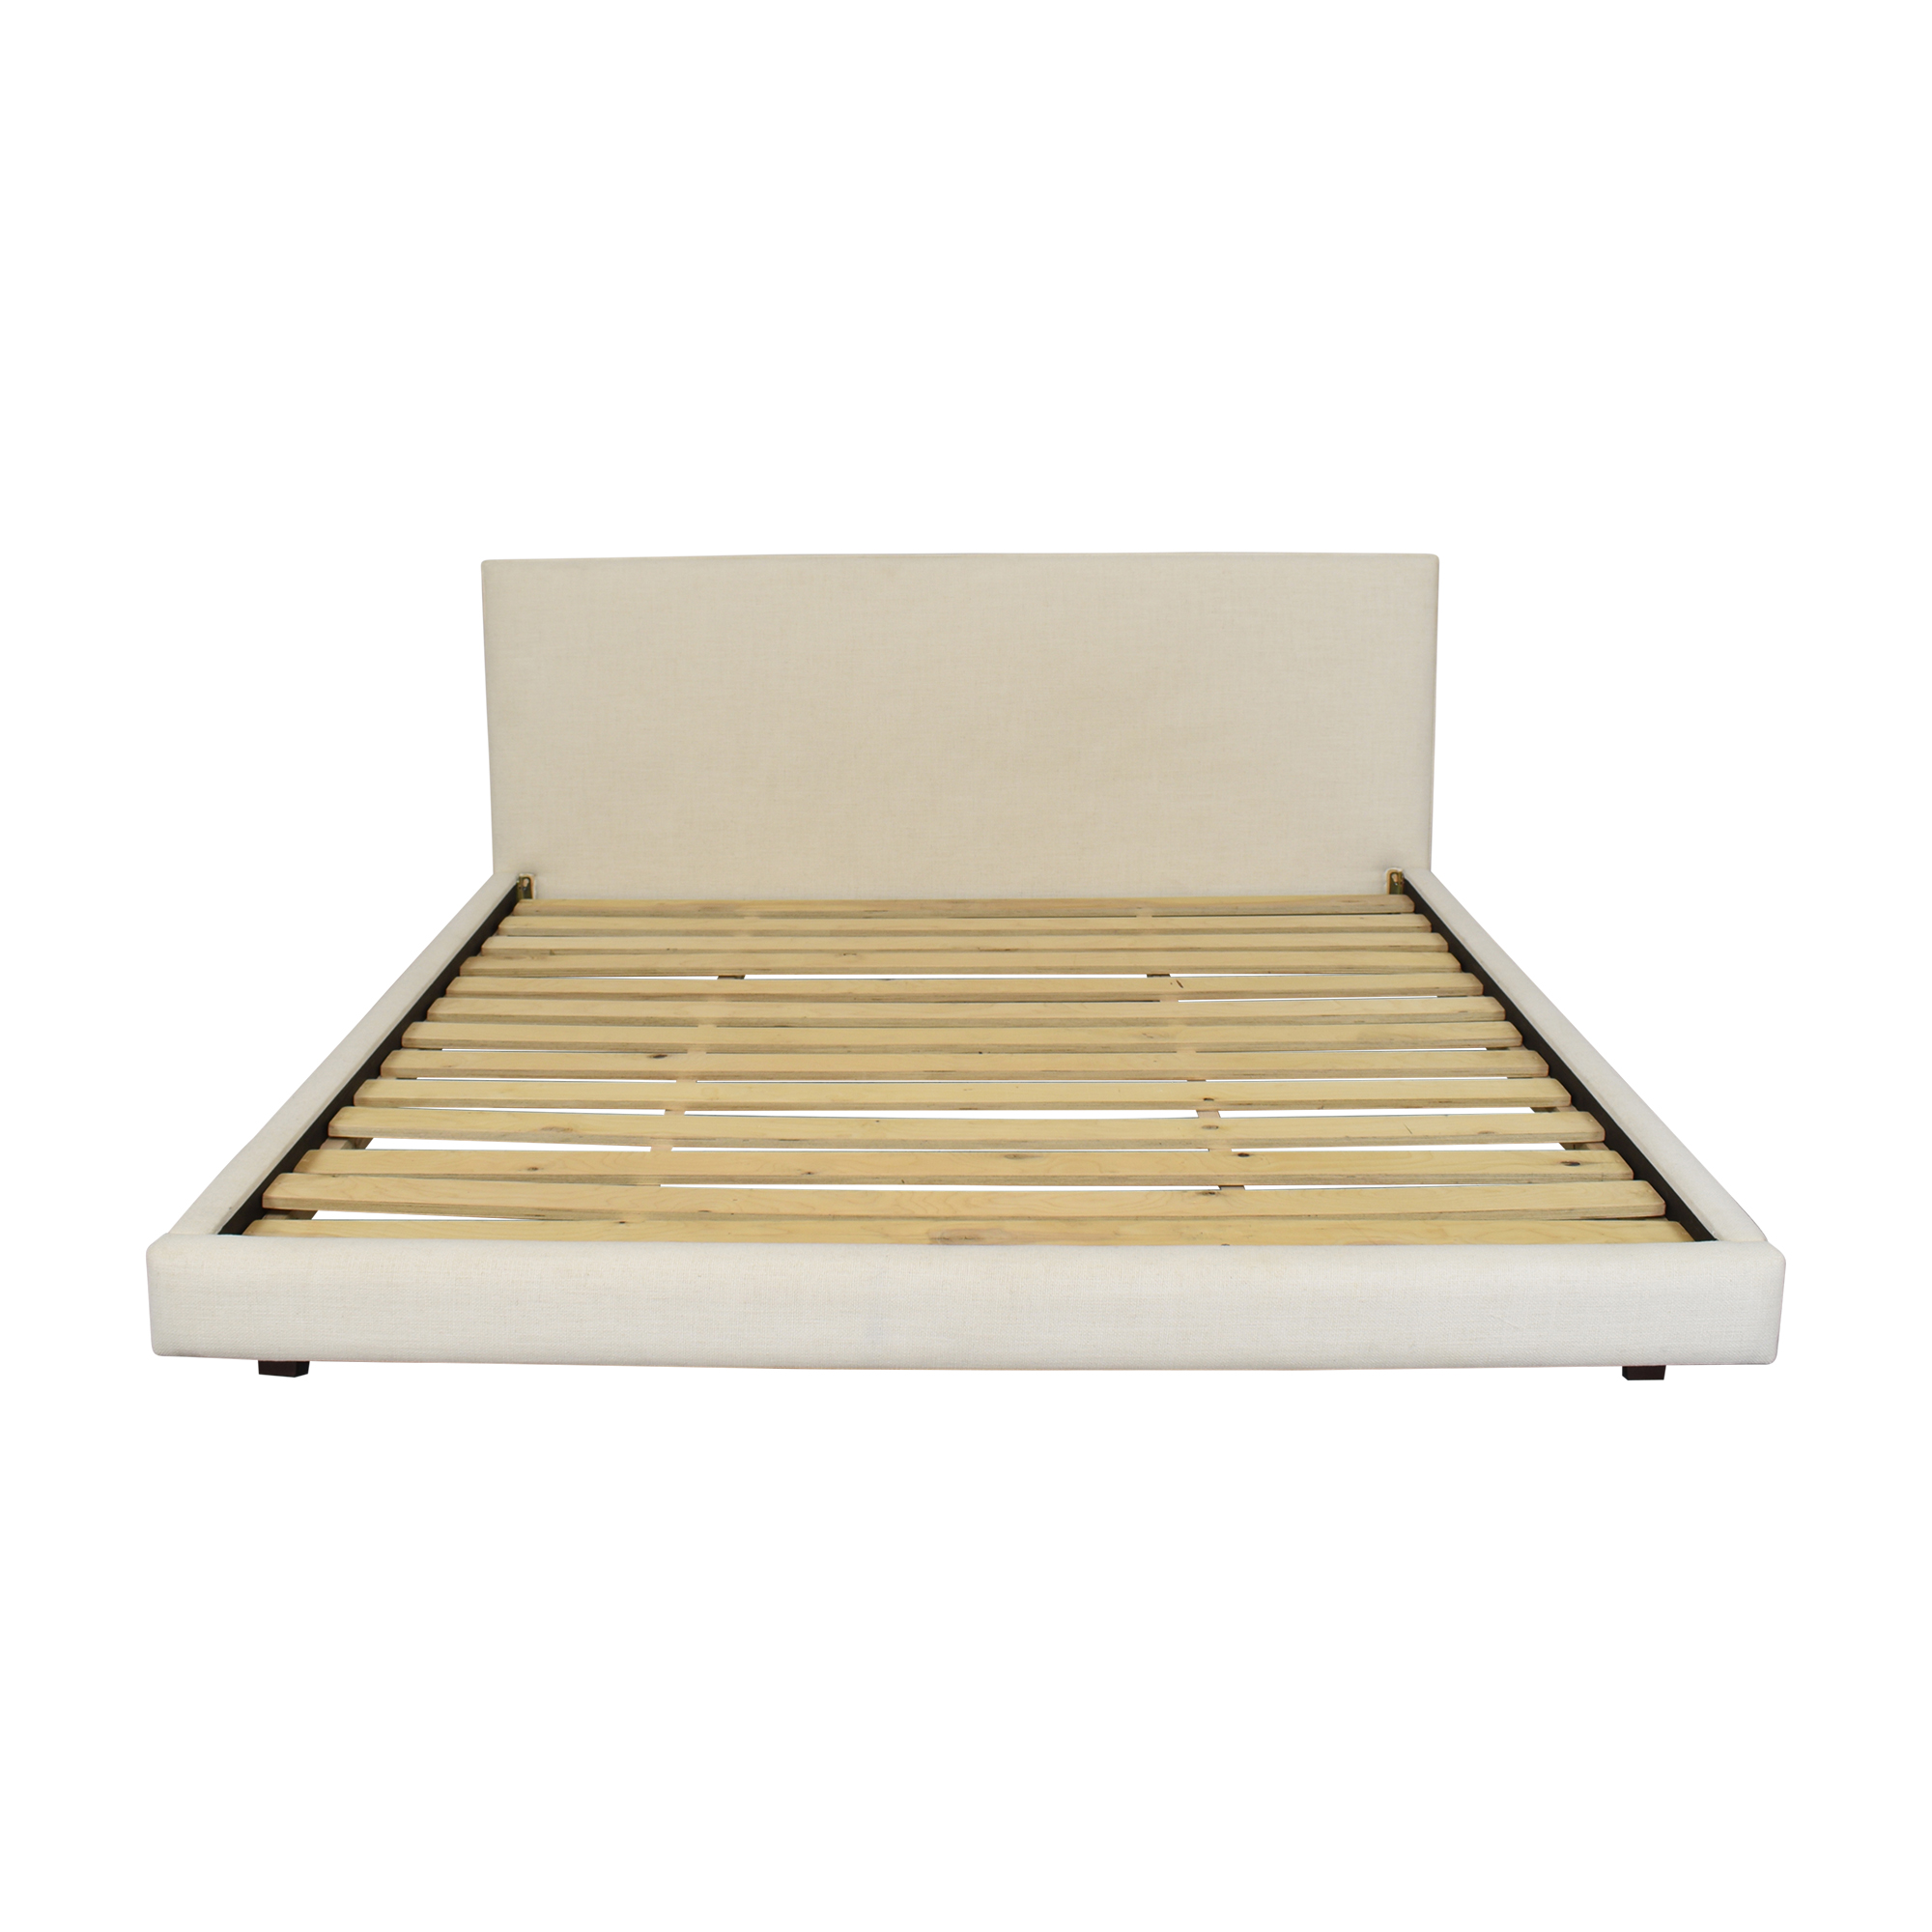 buy CB2 Facade Snow King Bed CB2 Beds